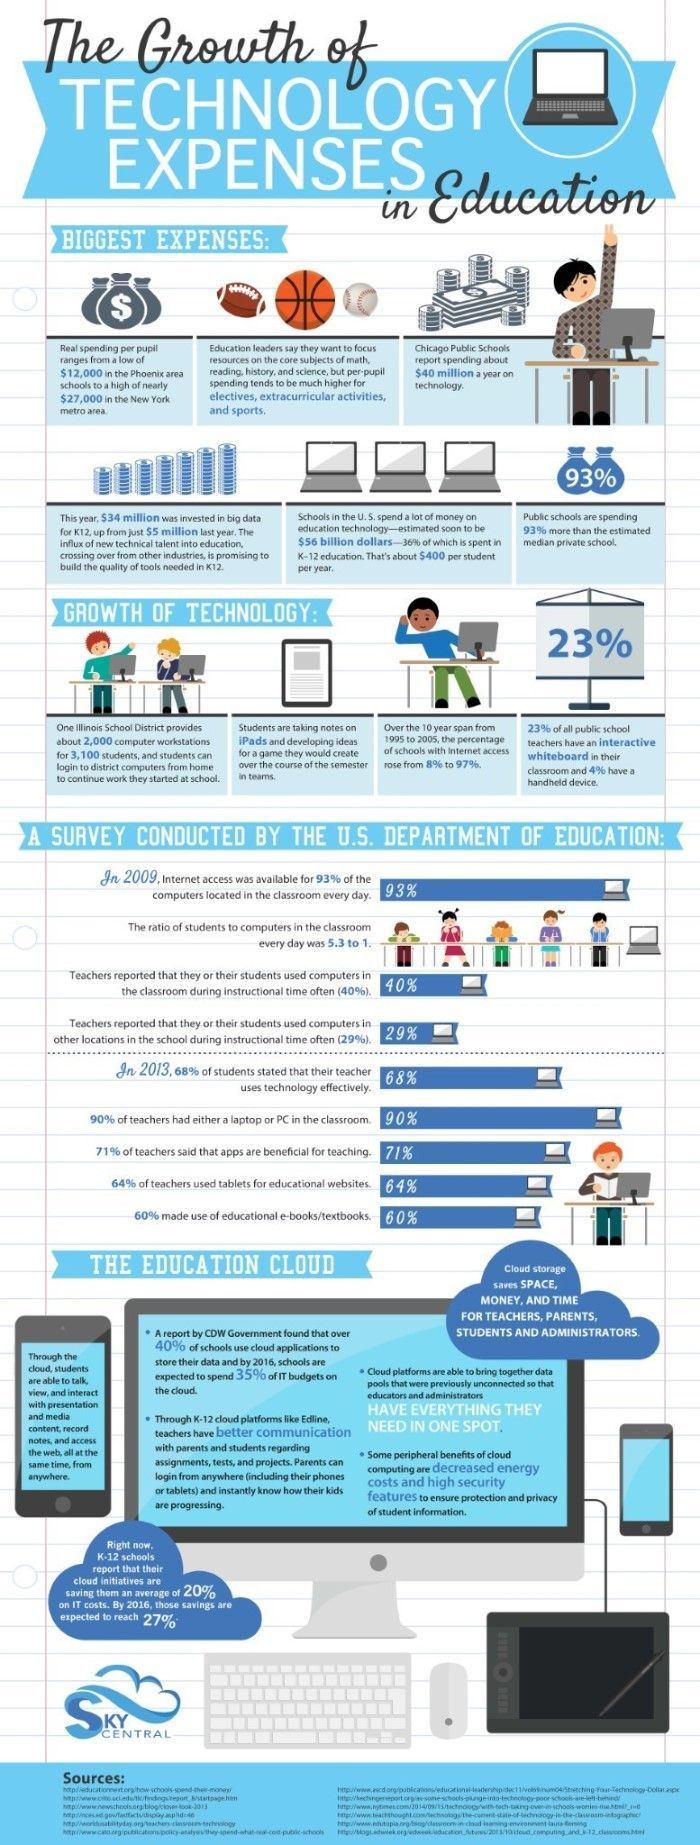 educational infographic the growth of technology expenses in